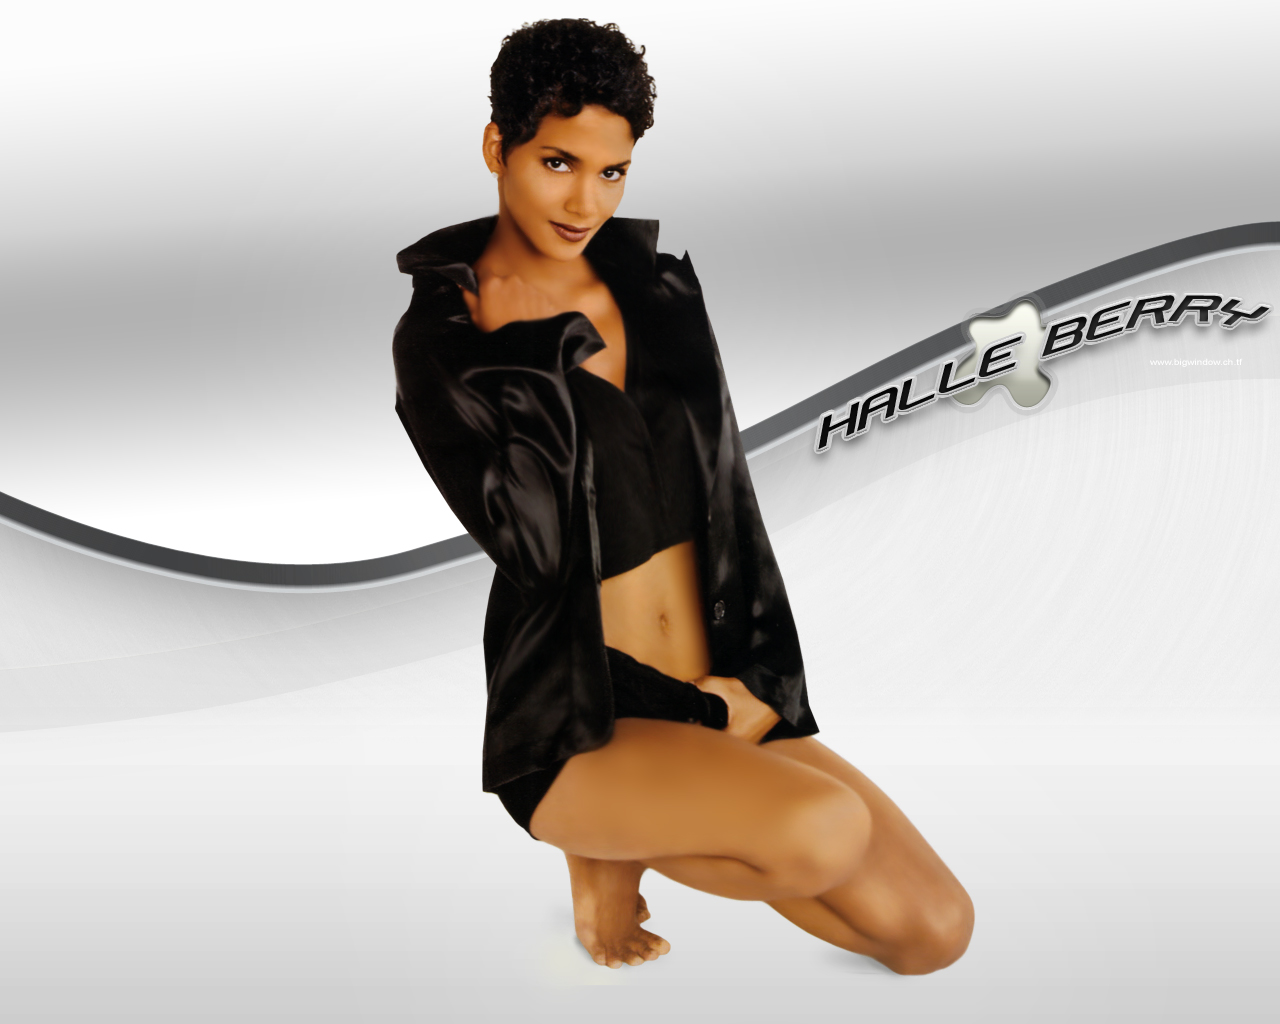 Halle berry Wallpapers  Photos  images  Halle berry pictures  9157